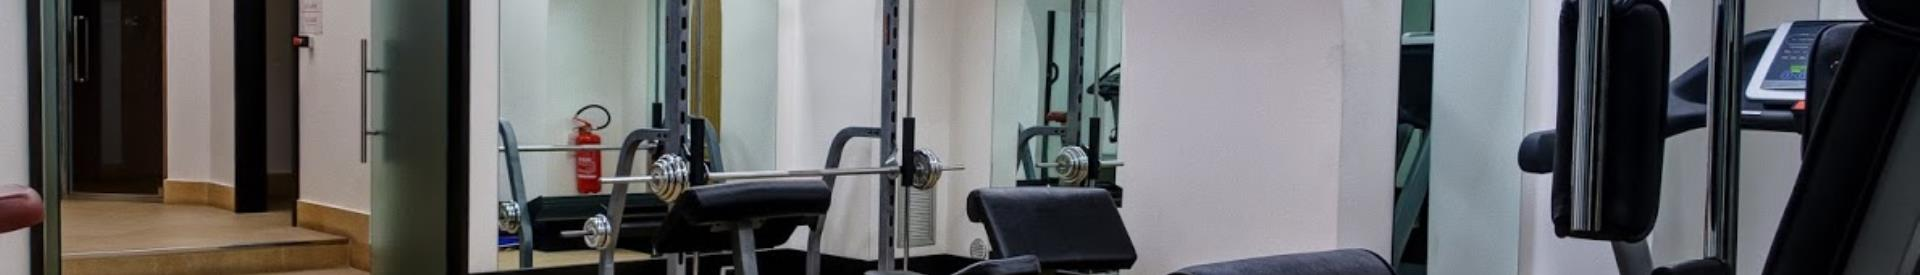 Gym Best Western Plus Hotel Universo Roma